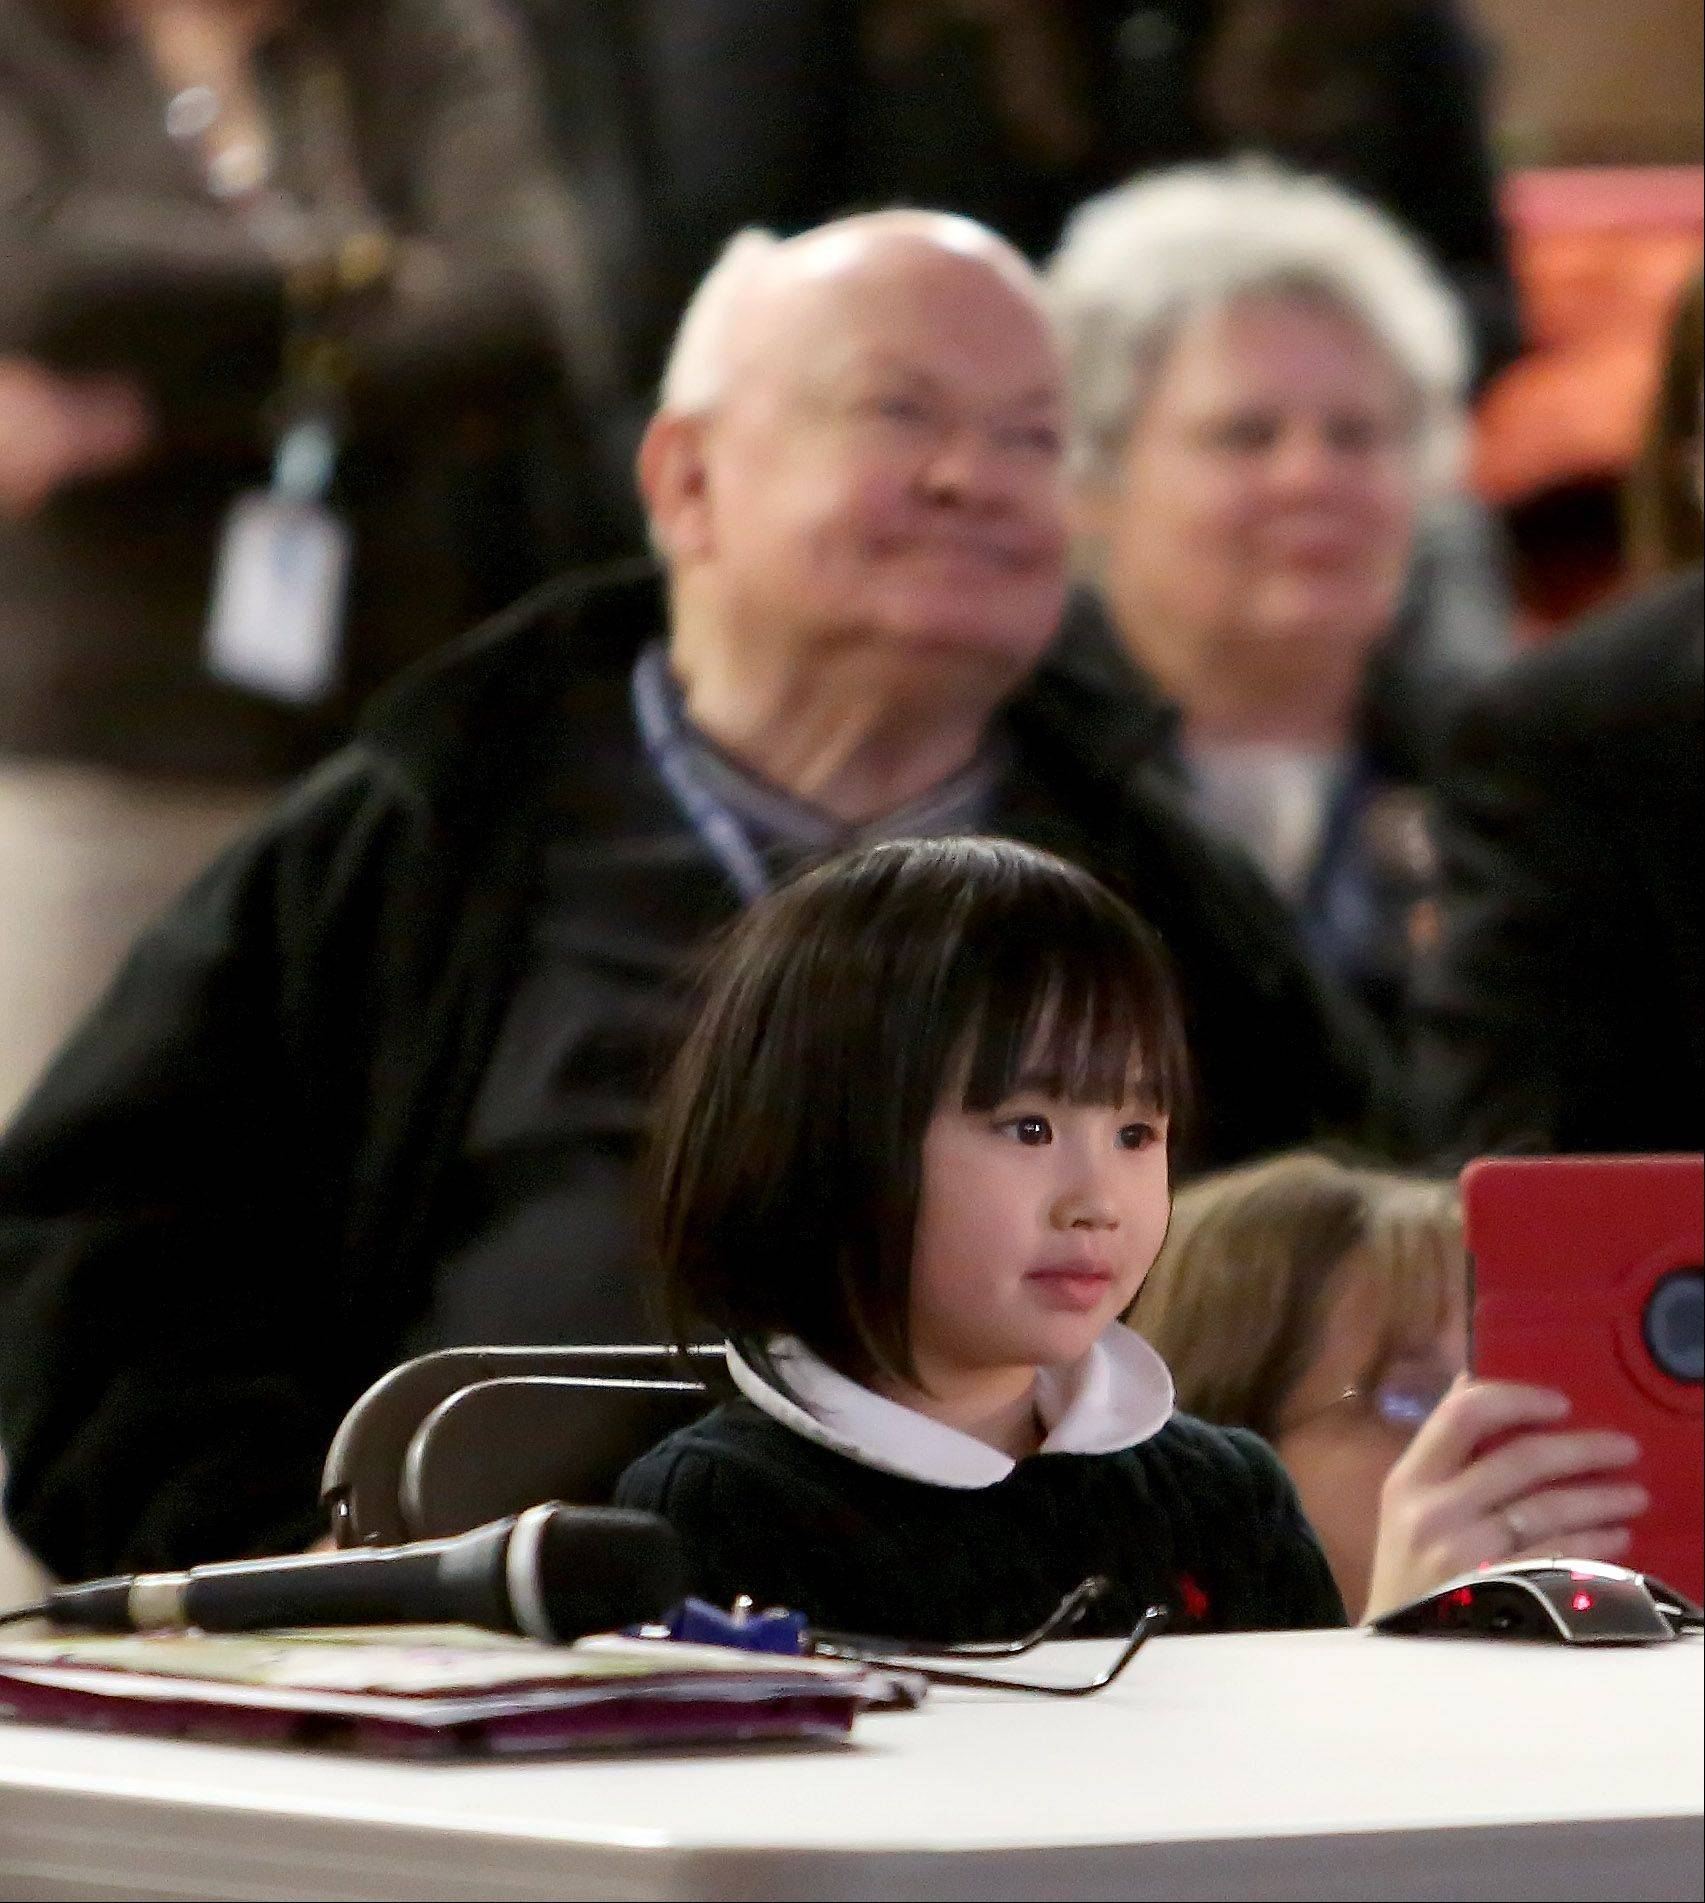 With Mayor George Pradel sitting nearby at St. Raphael School in Naperville, first-grader Miya Lin listens to her question being answered by Cmdr. Kevin Ford from aboard the International Space Station.